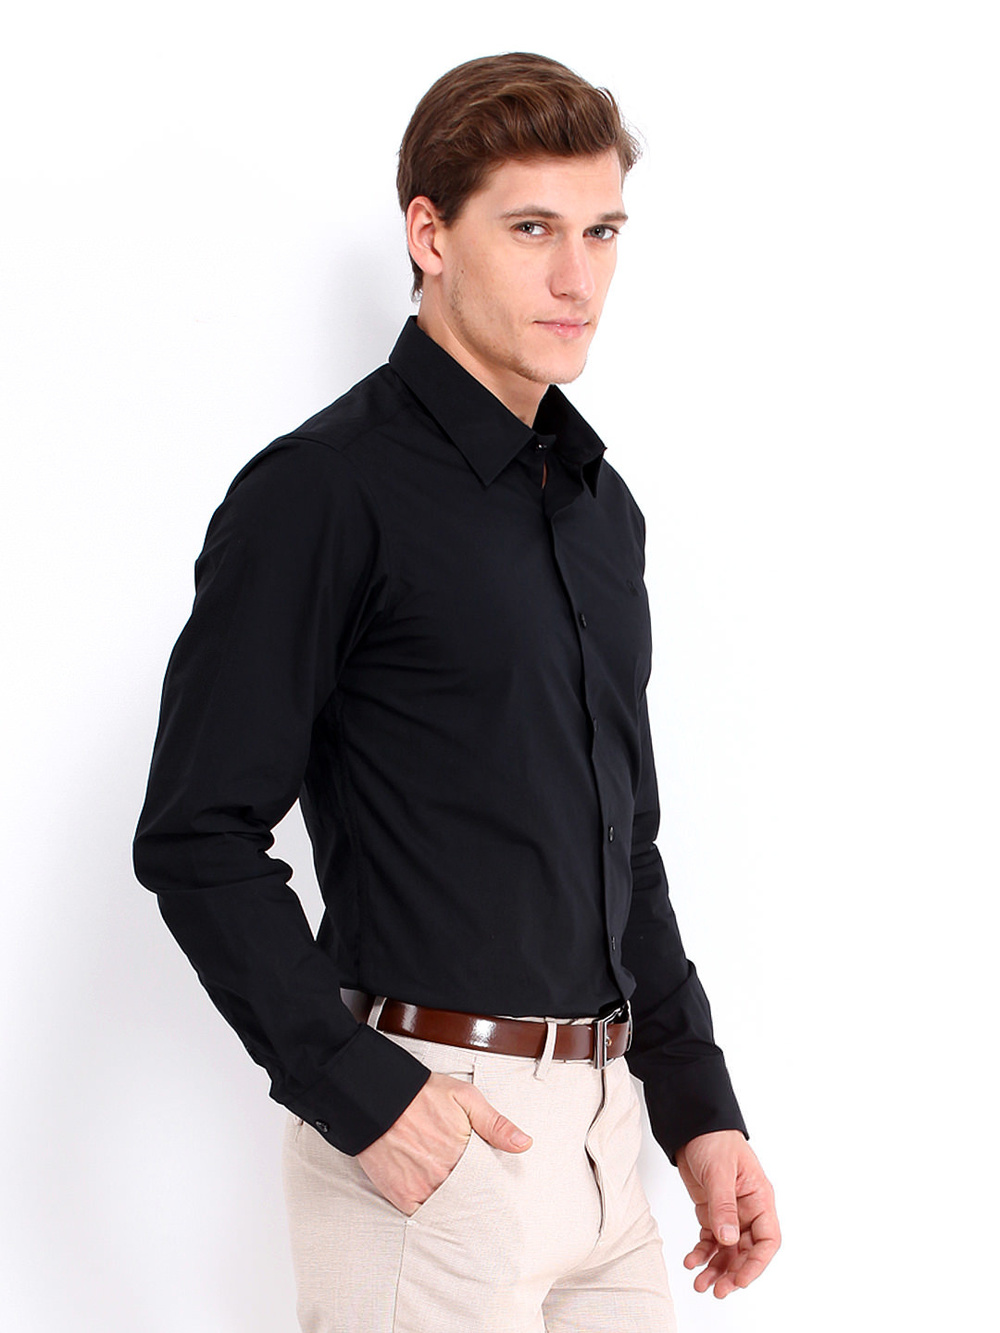 Find great deals on eBay for smart shirts. Shop with confidence.